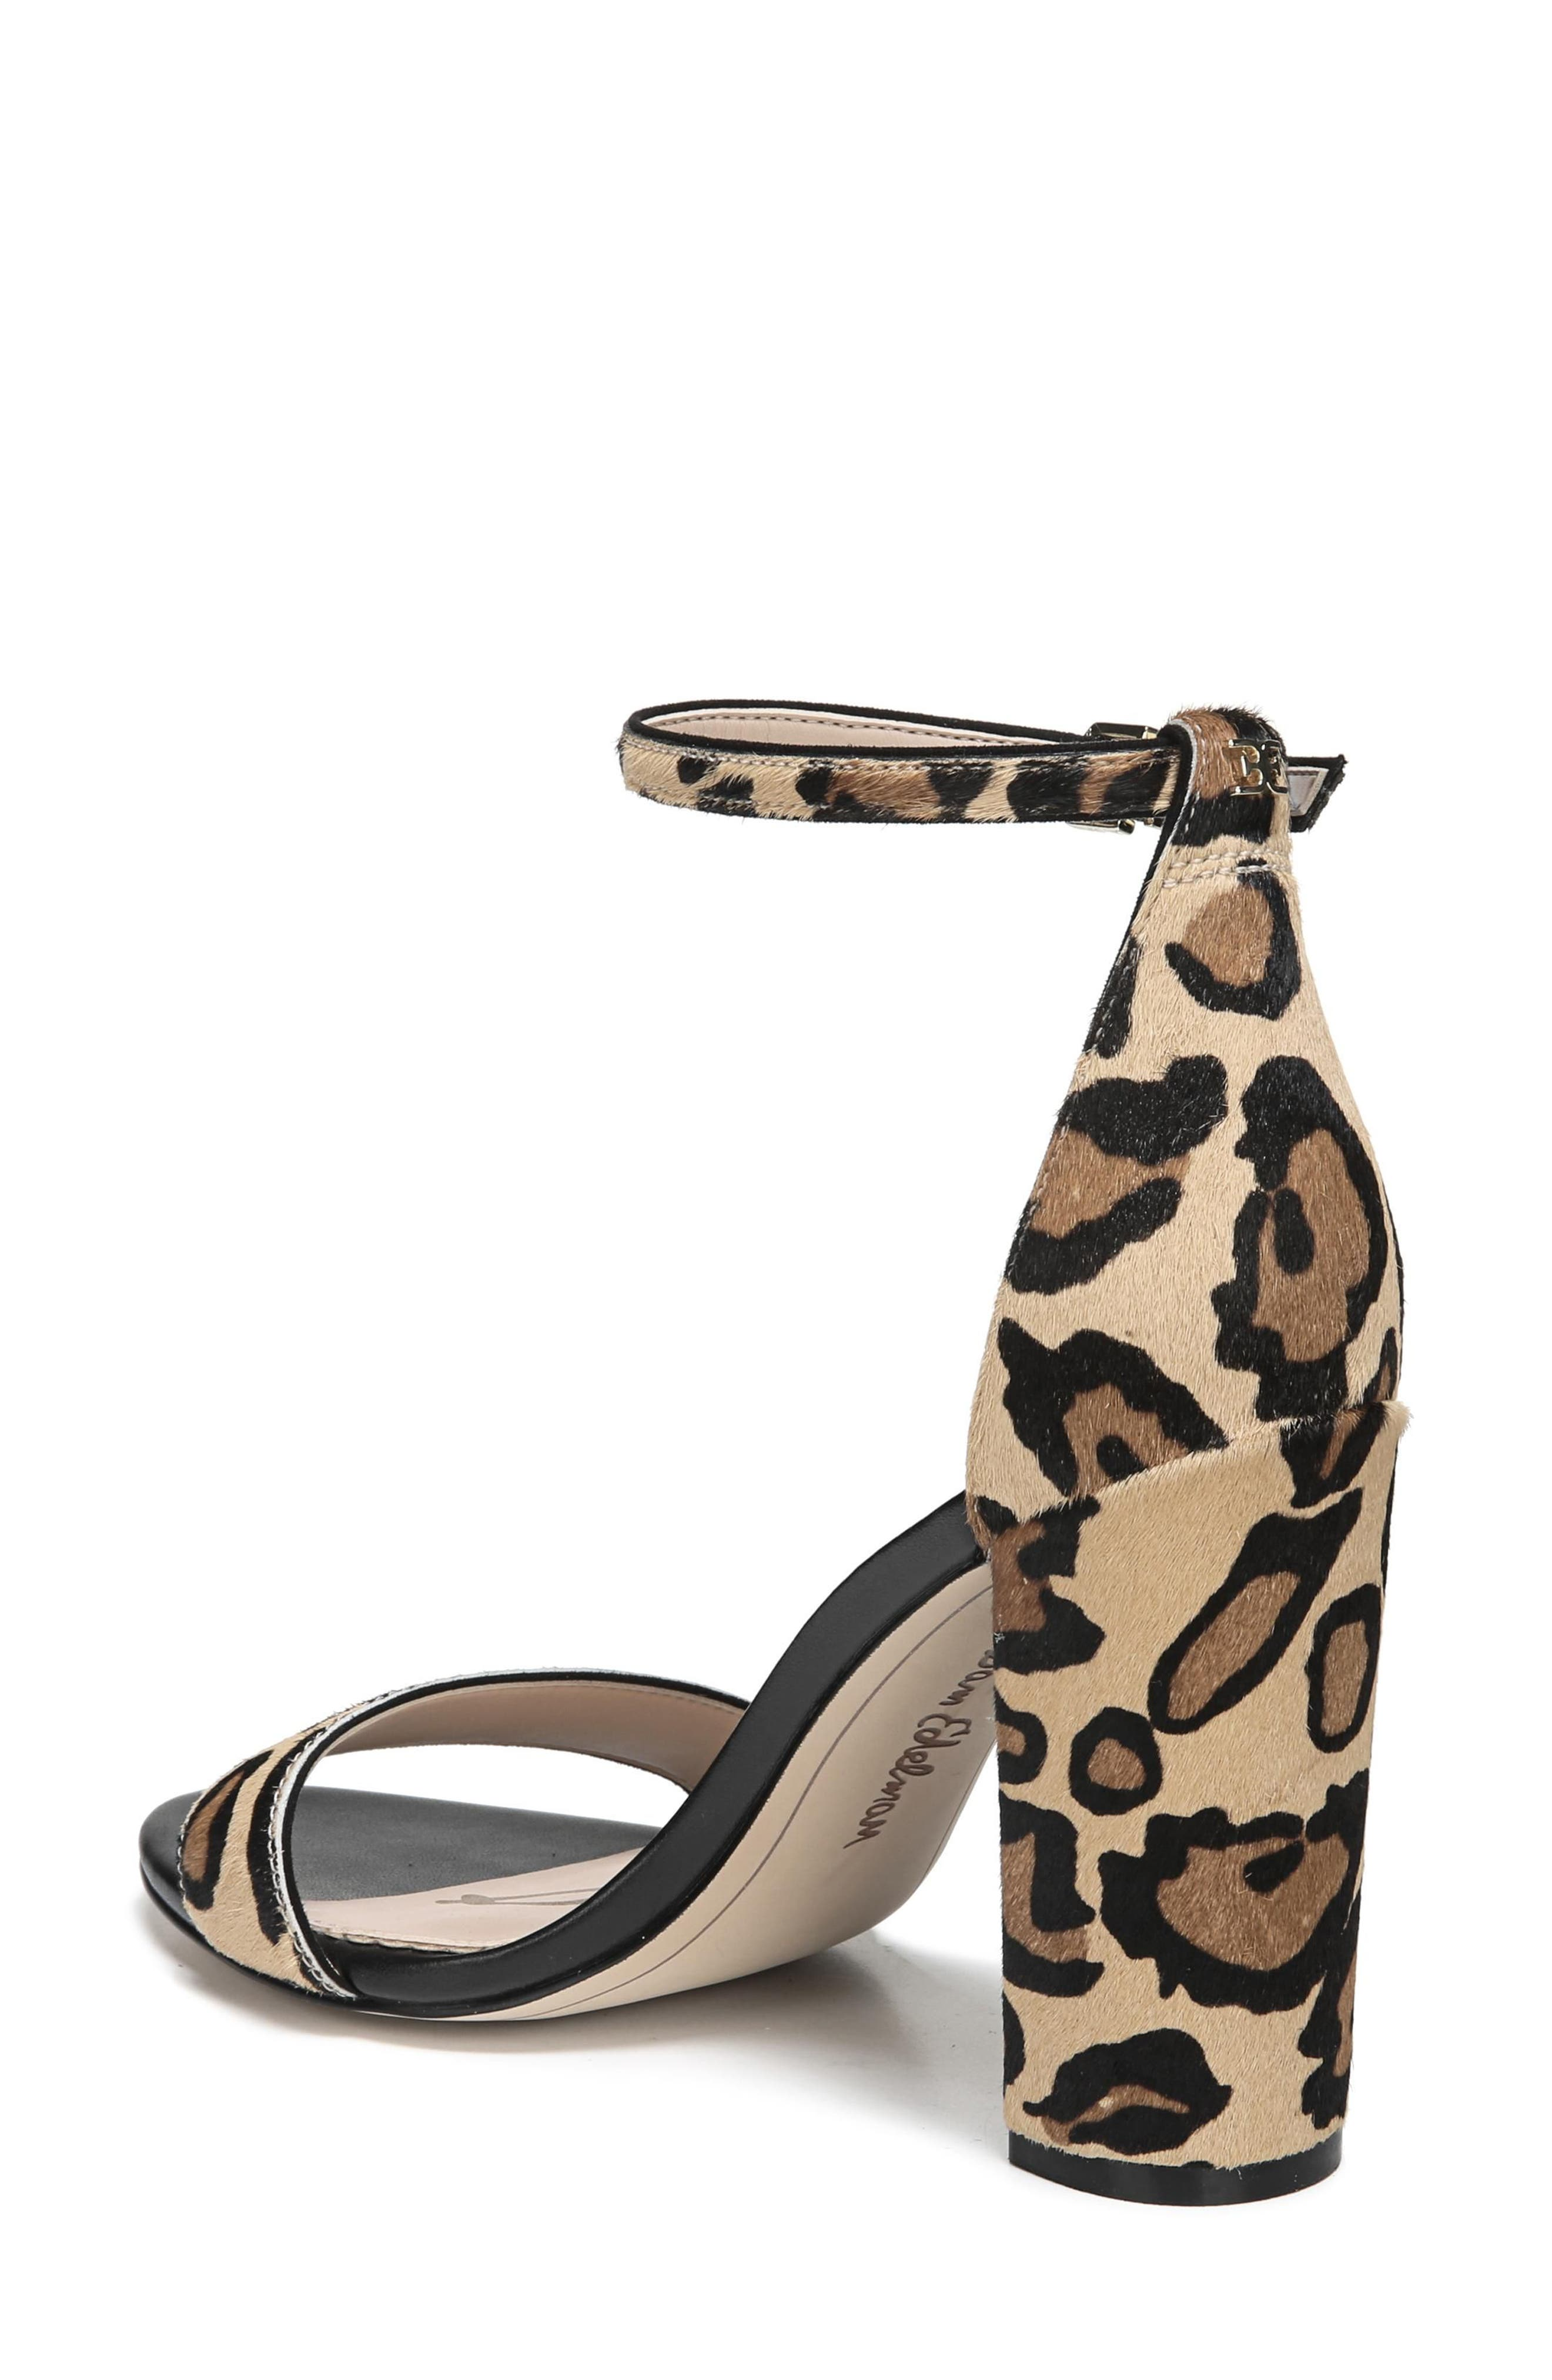 Yaro Ankle Strap Sandal,                             Alternate thumbnail 2, color,                             New Nude Leopard Calf Hair